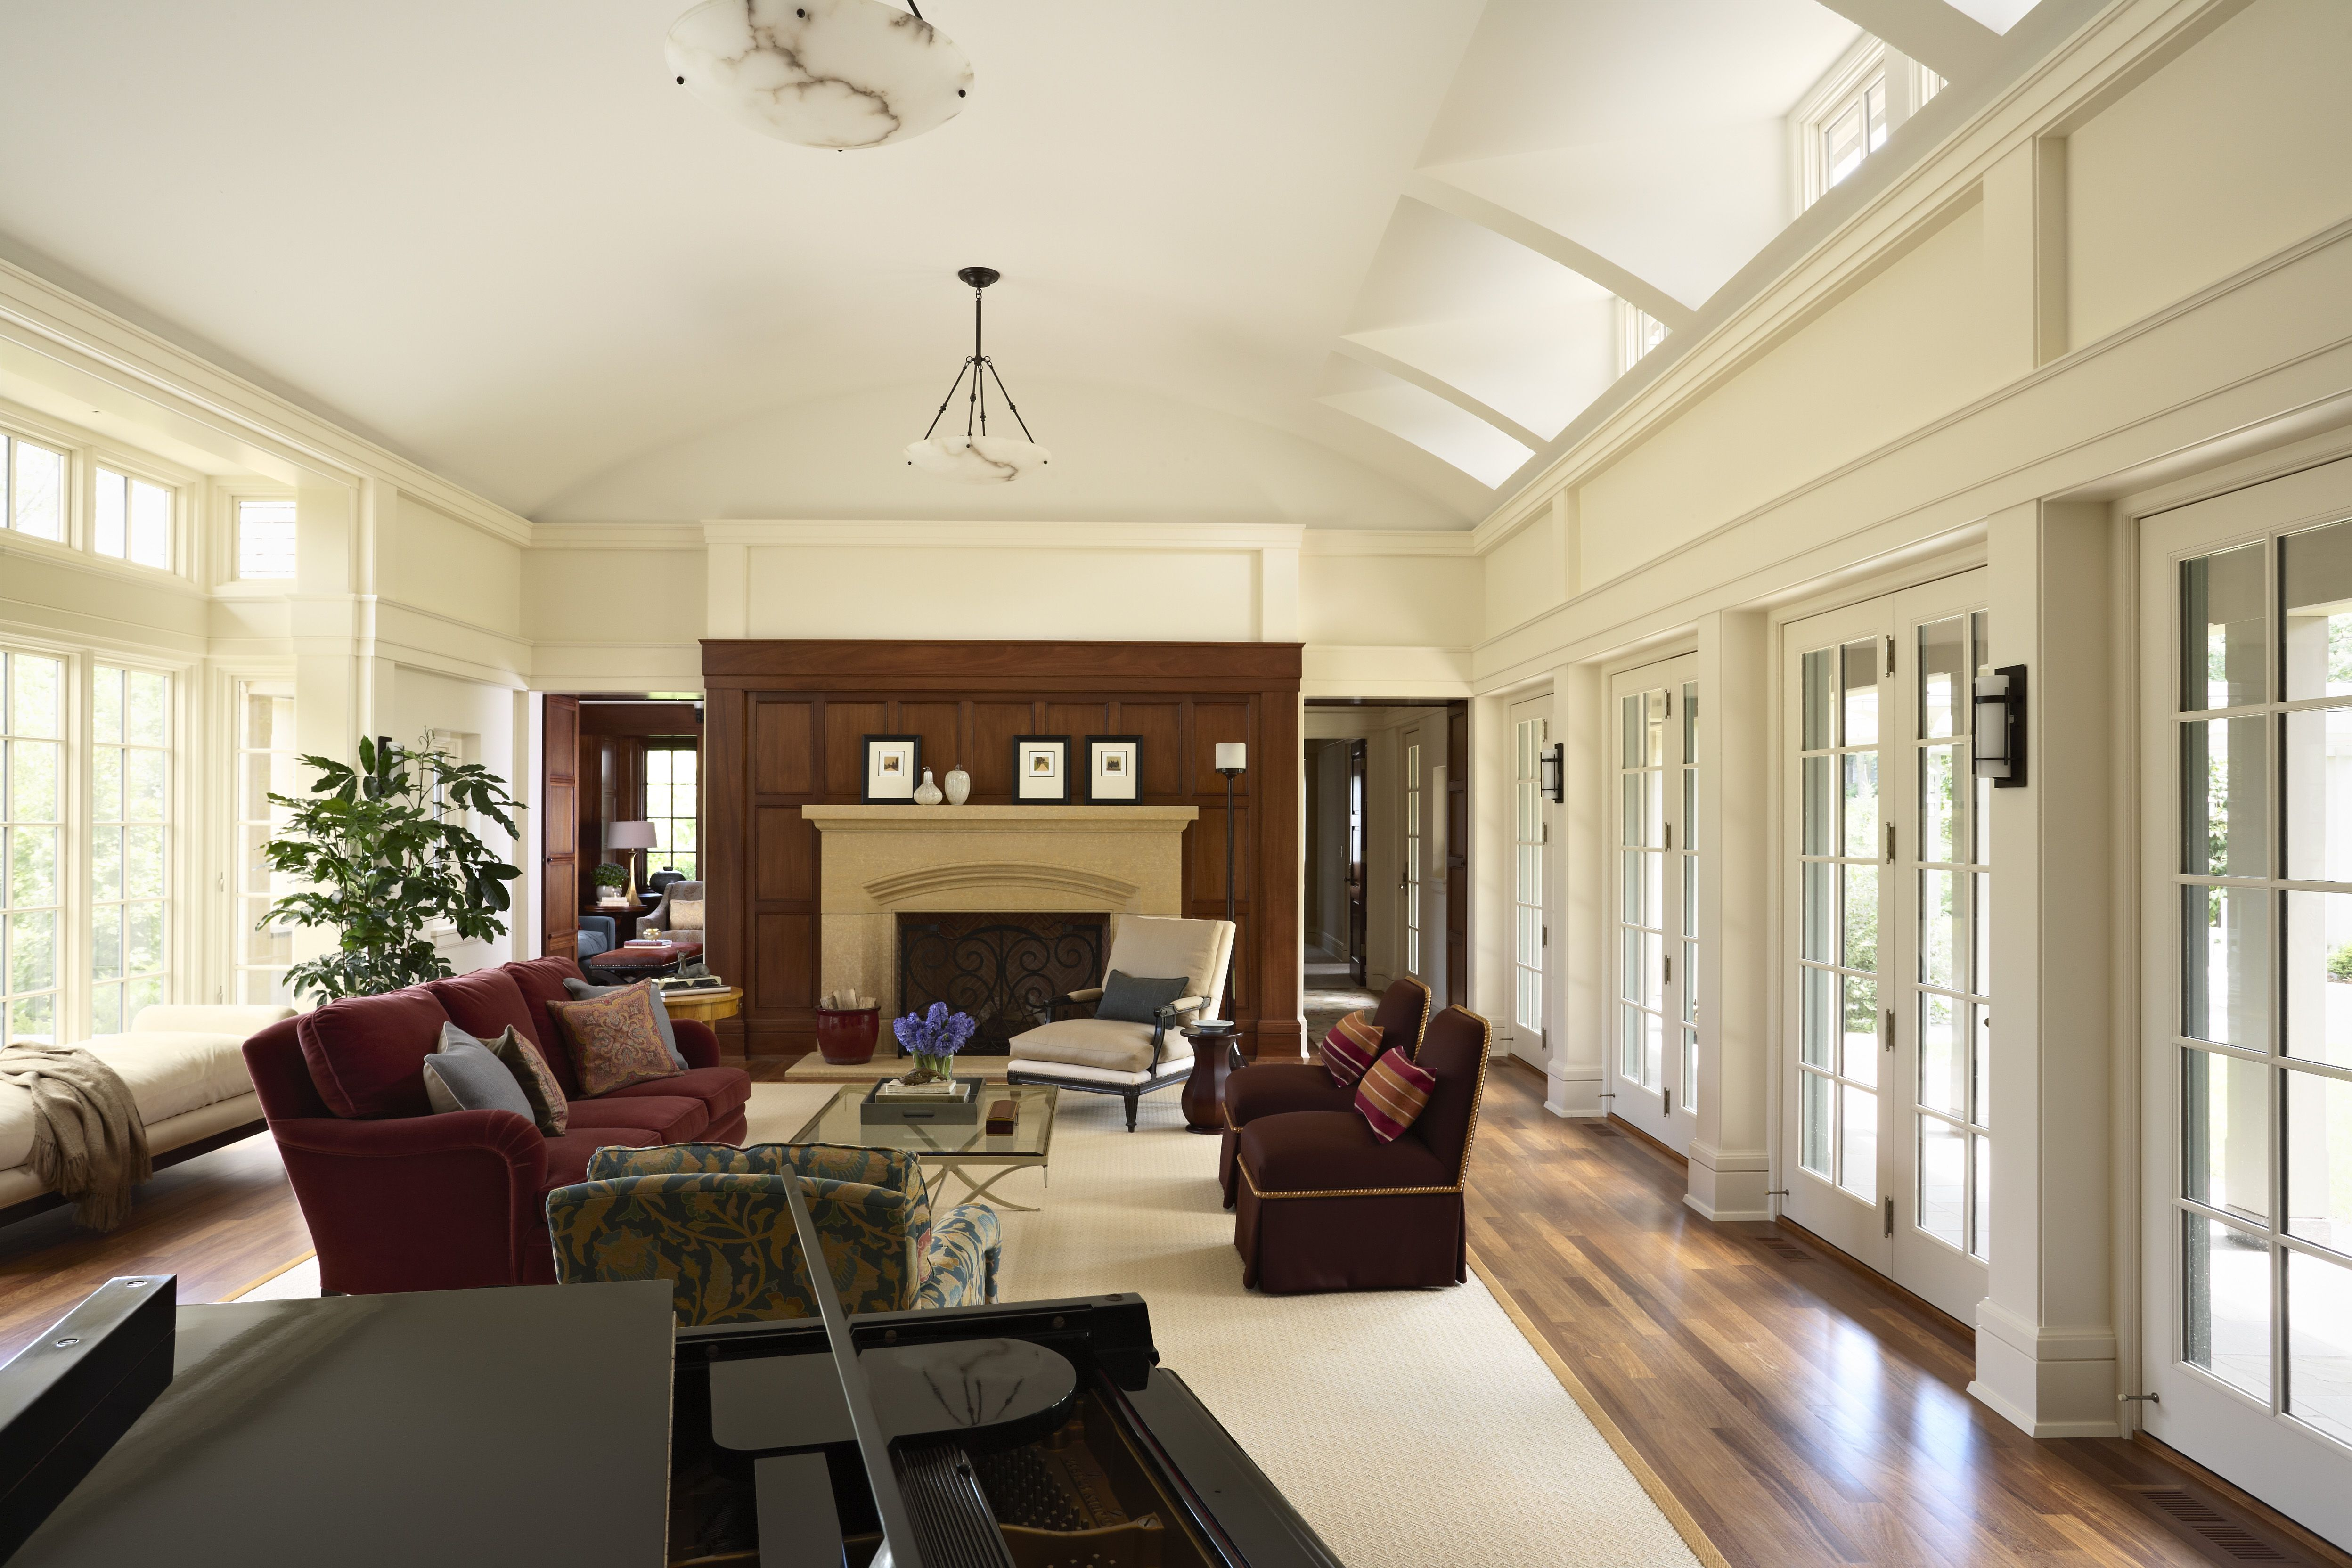 Modern english country house country interior modern english living room furniture living room